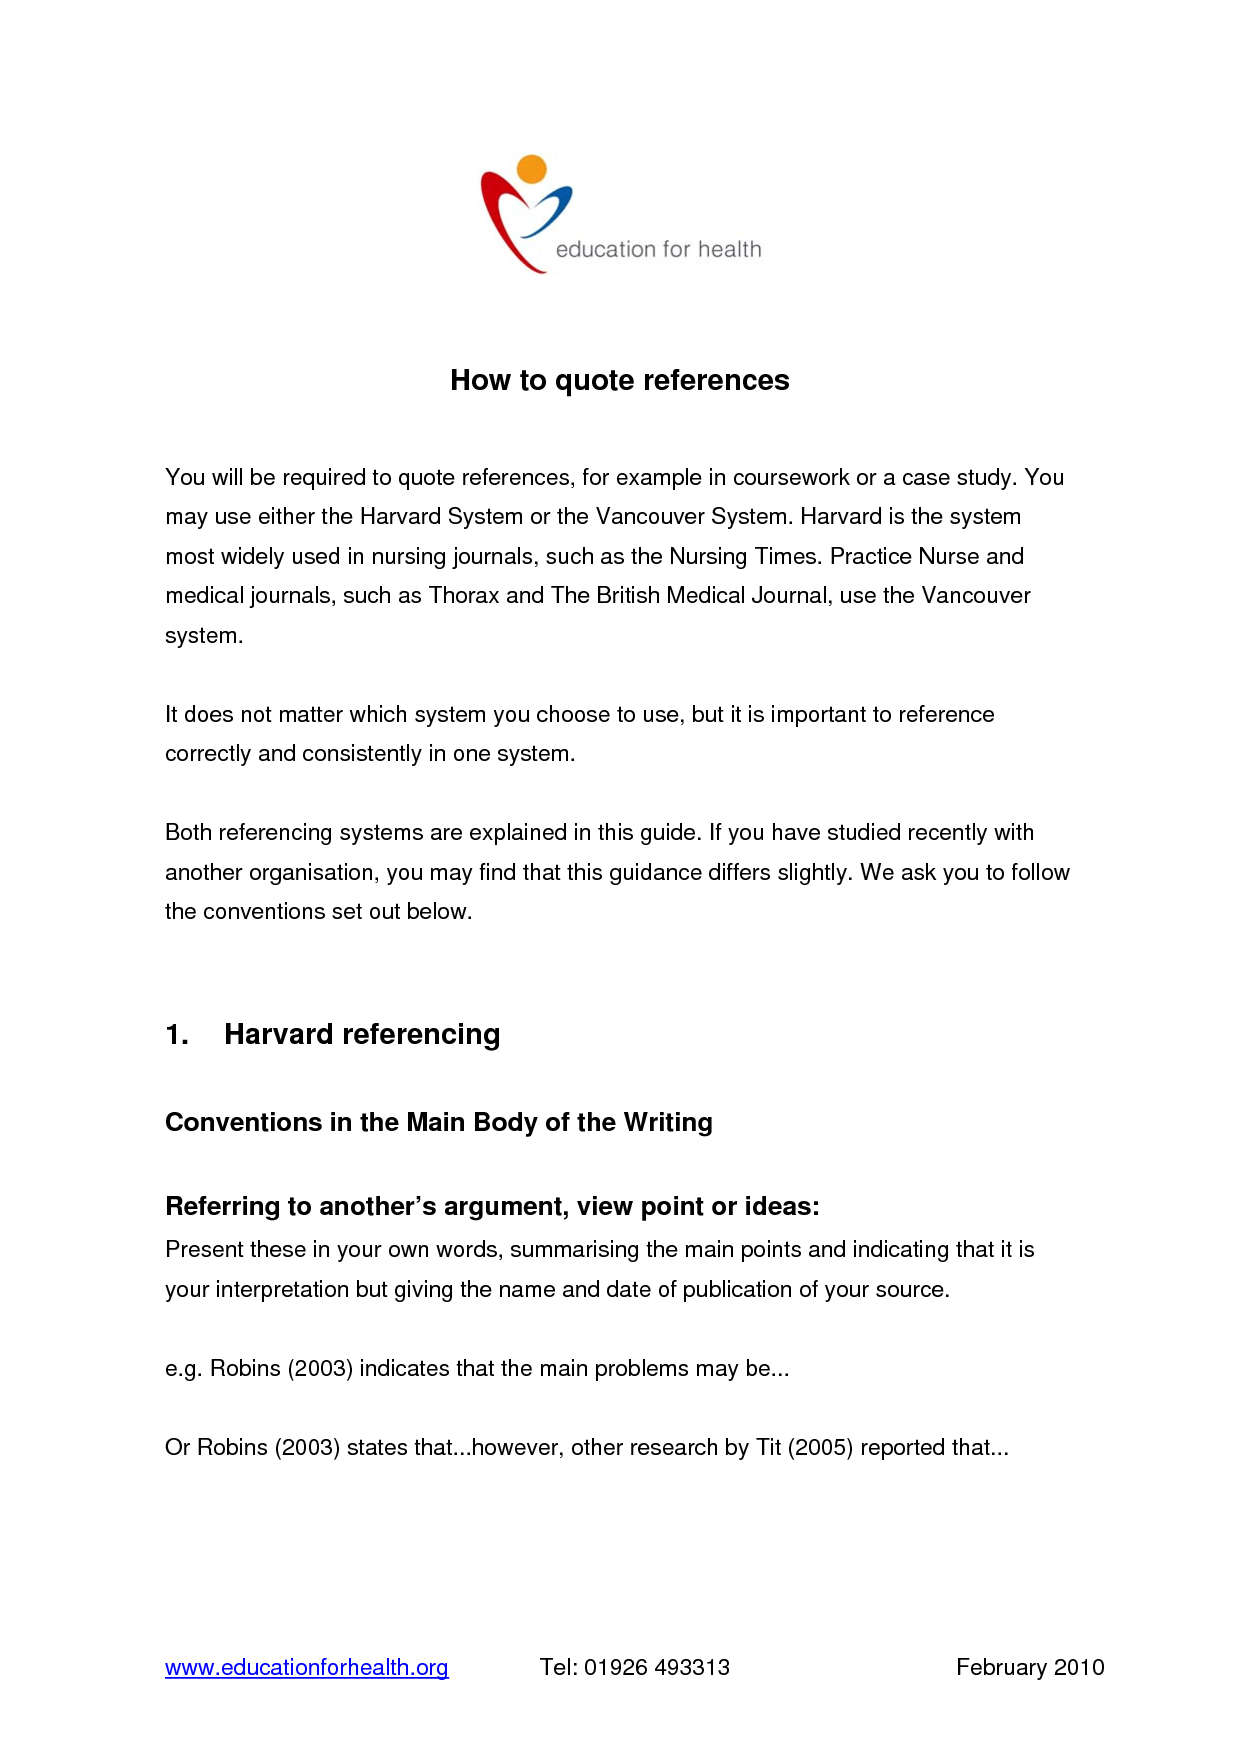 006 Research Paper Appendices Example In Harvard Style Excellent Full